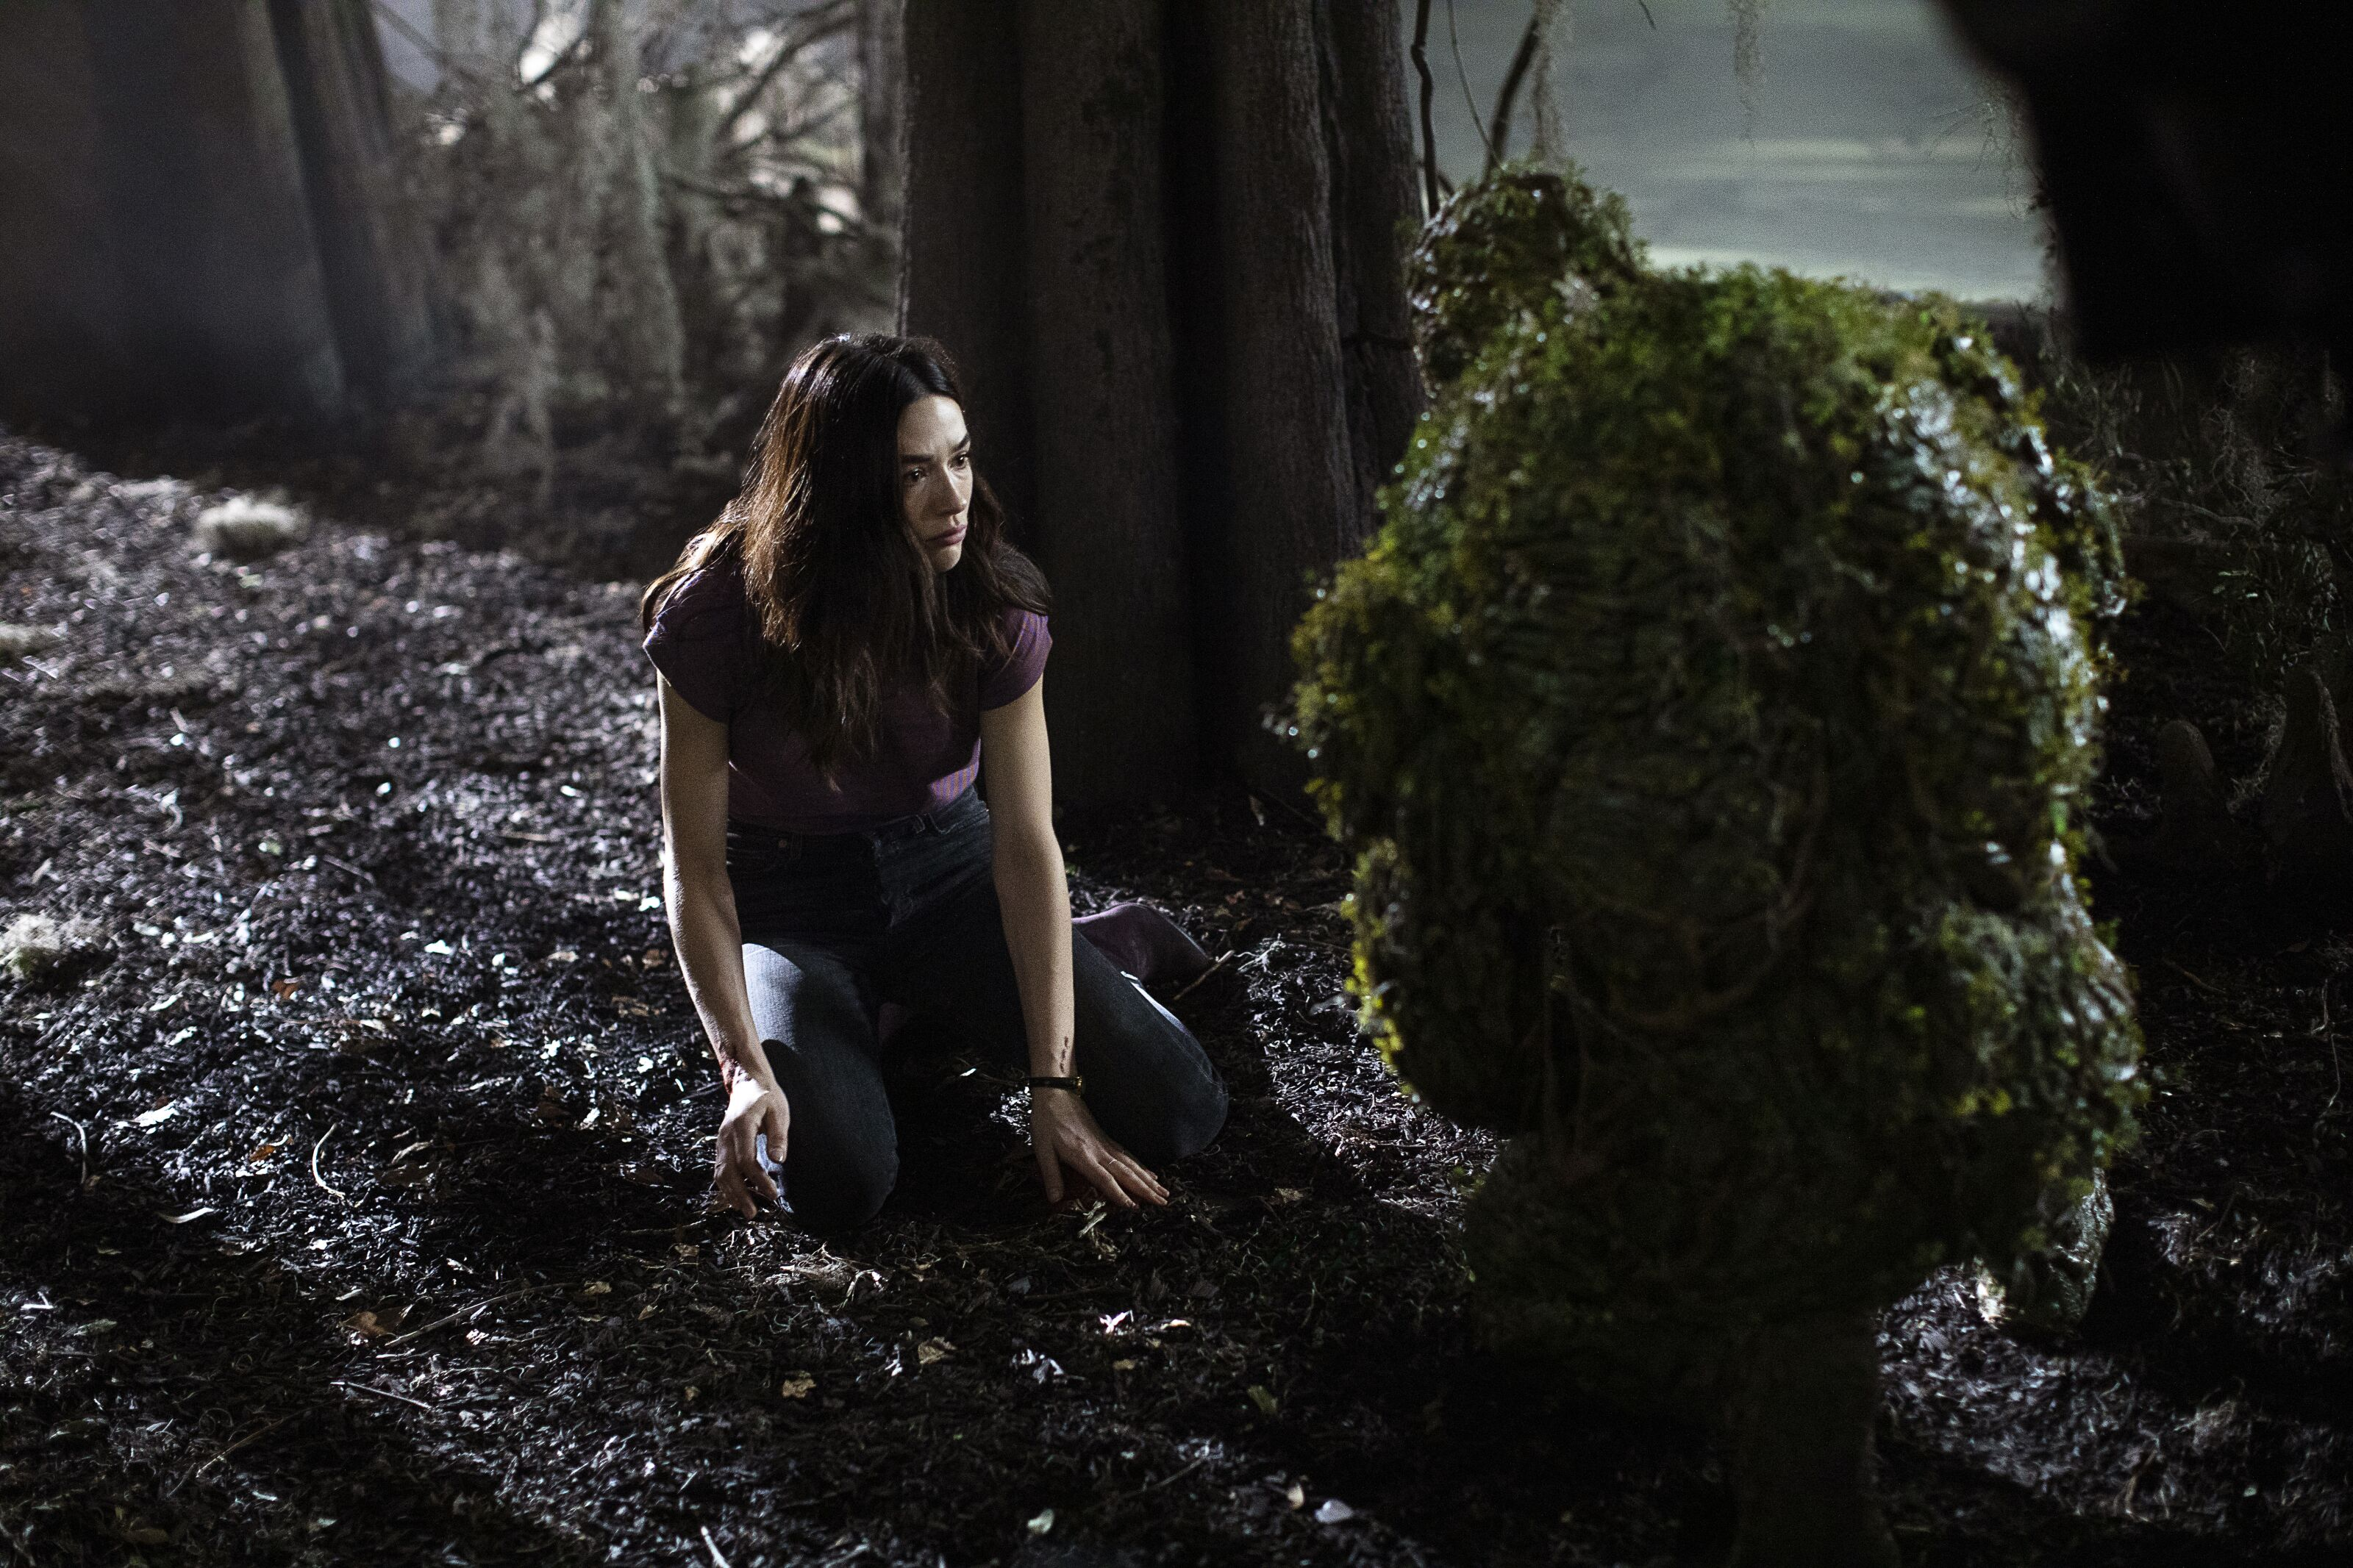 Swamp Thing season 1, episode 4 review: Darkness on the Edge